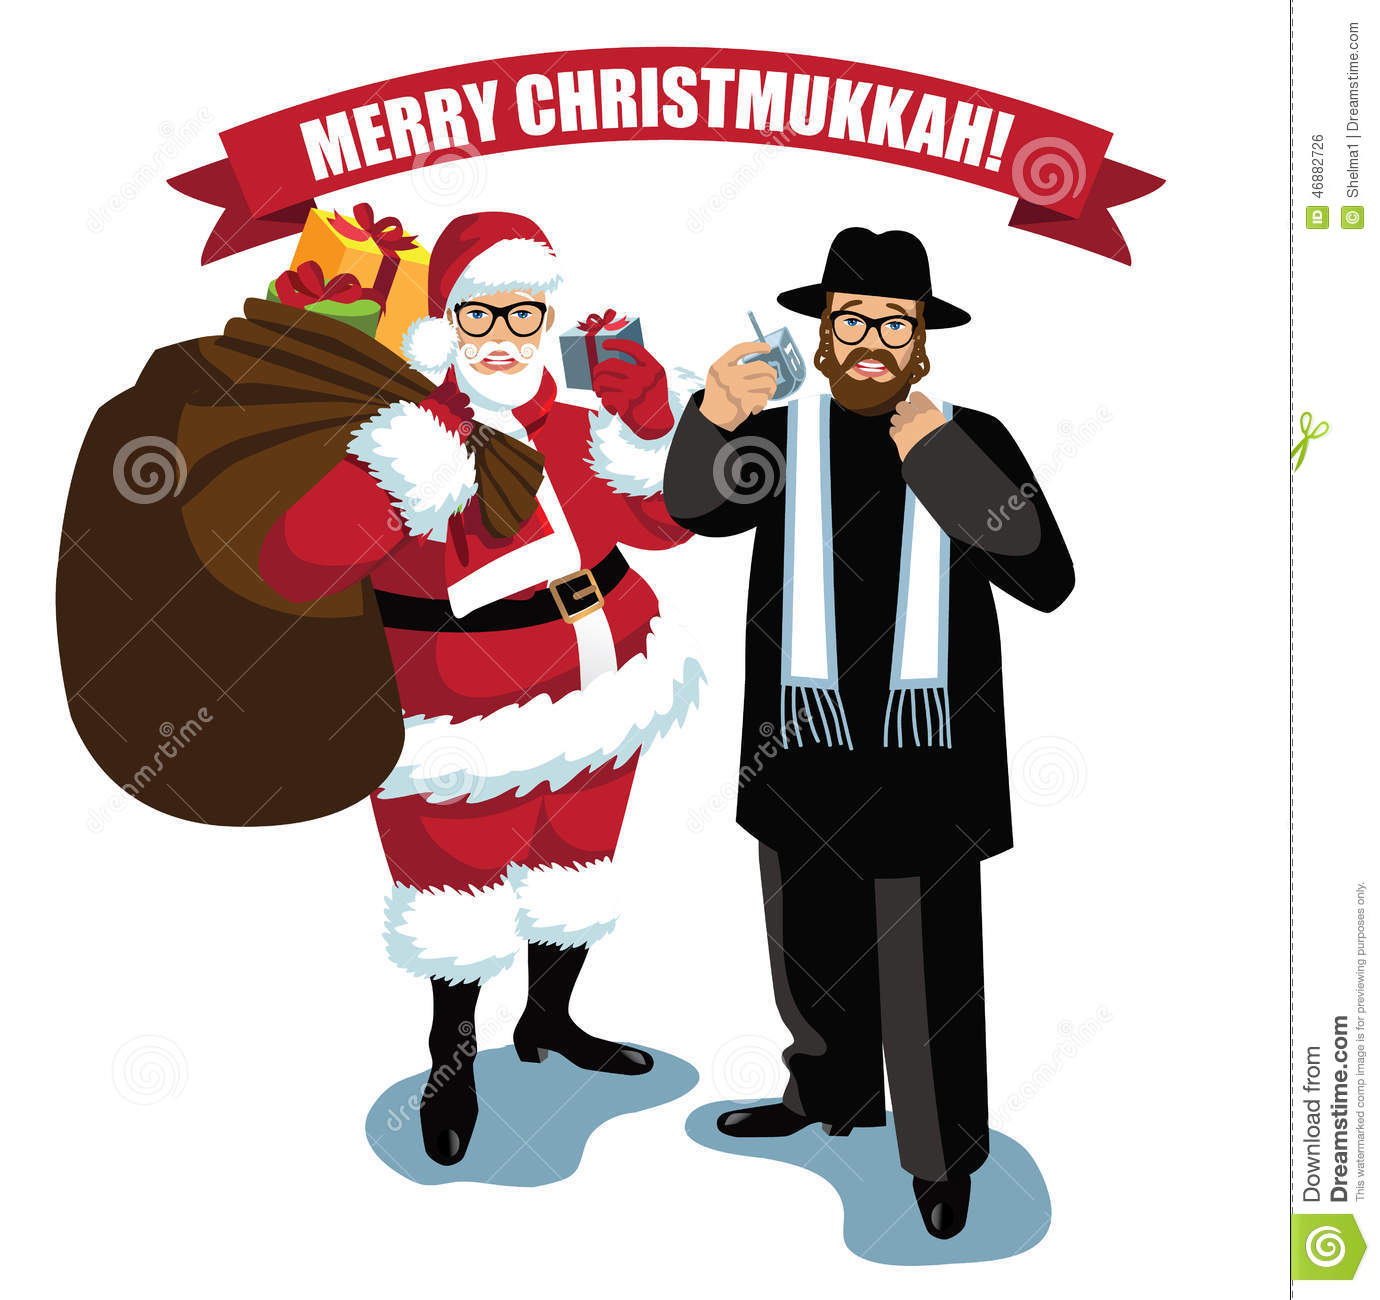 Merry Christmukkah Santa and Rabbi isolated